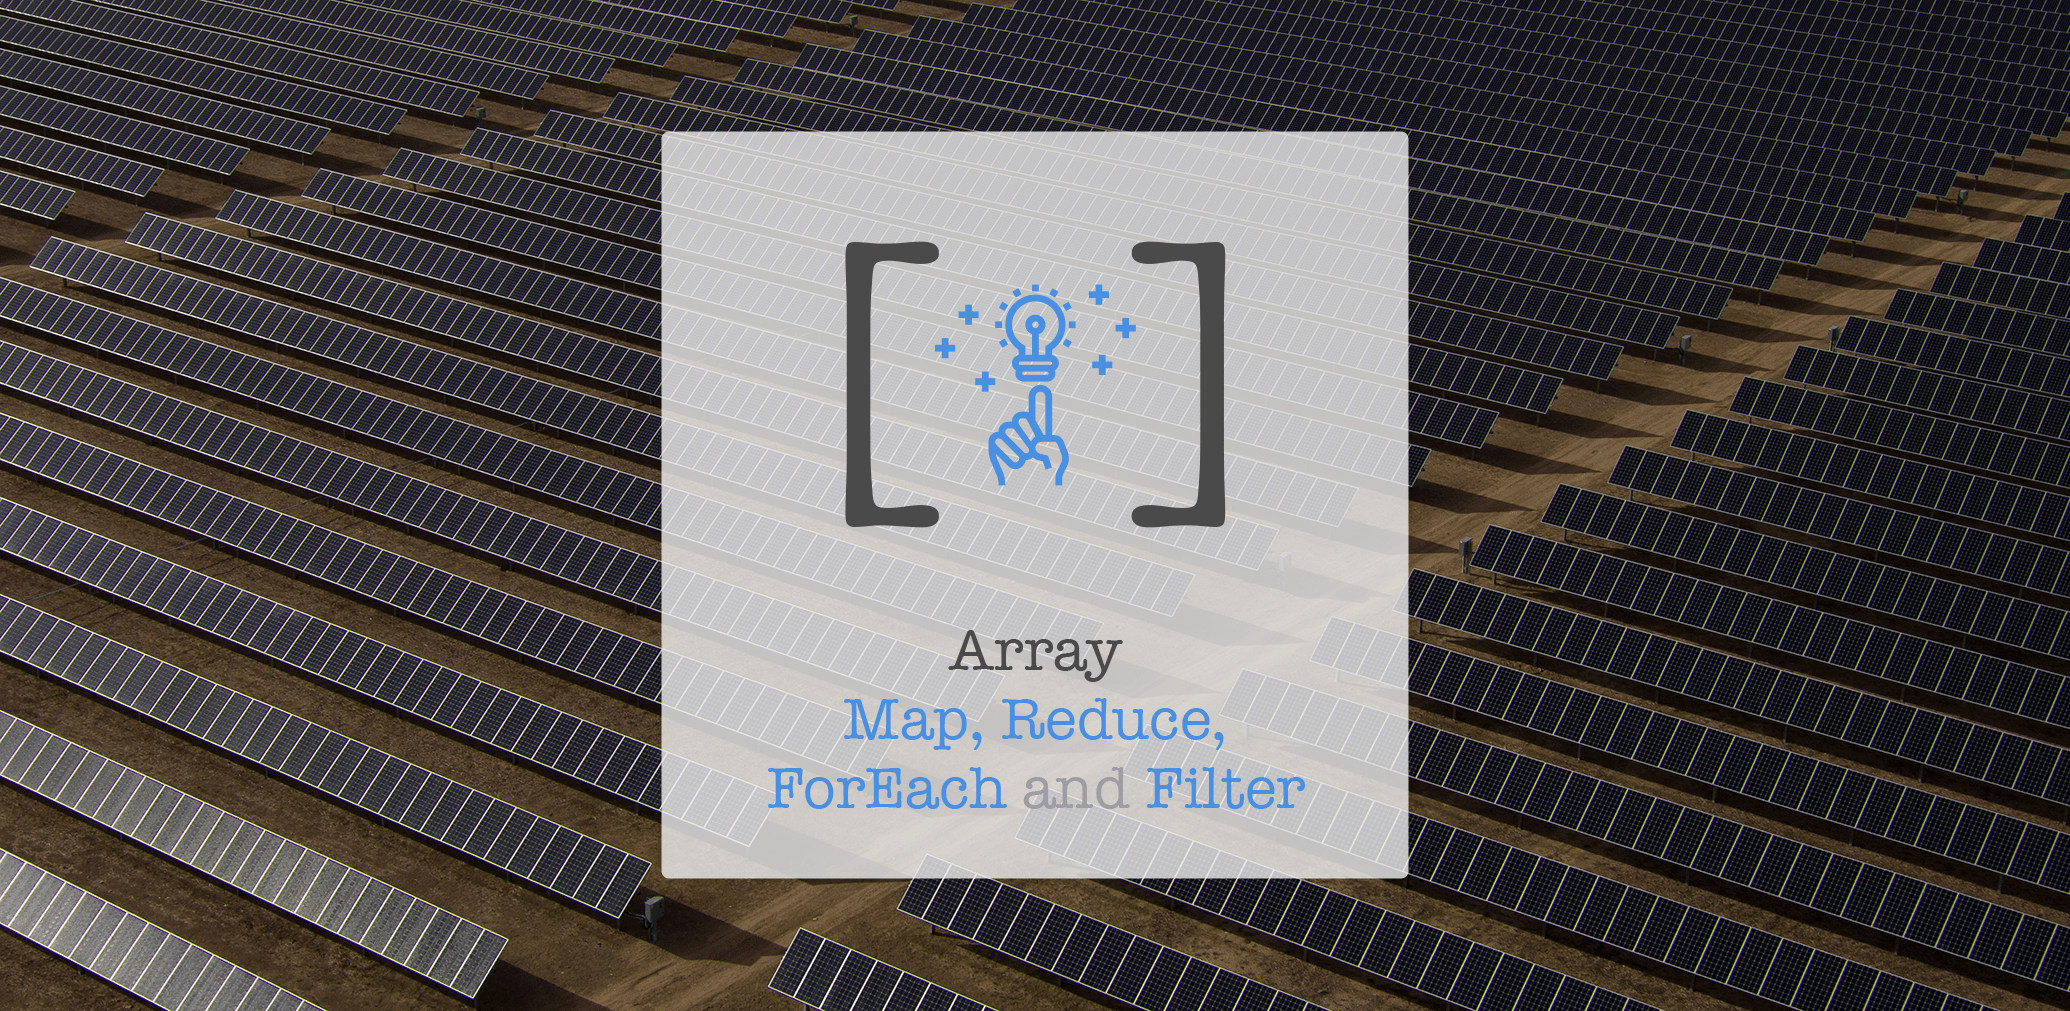 Brief guide to Map, Reduce, ForEach and Filter for Arrays